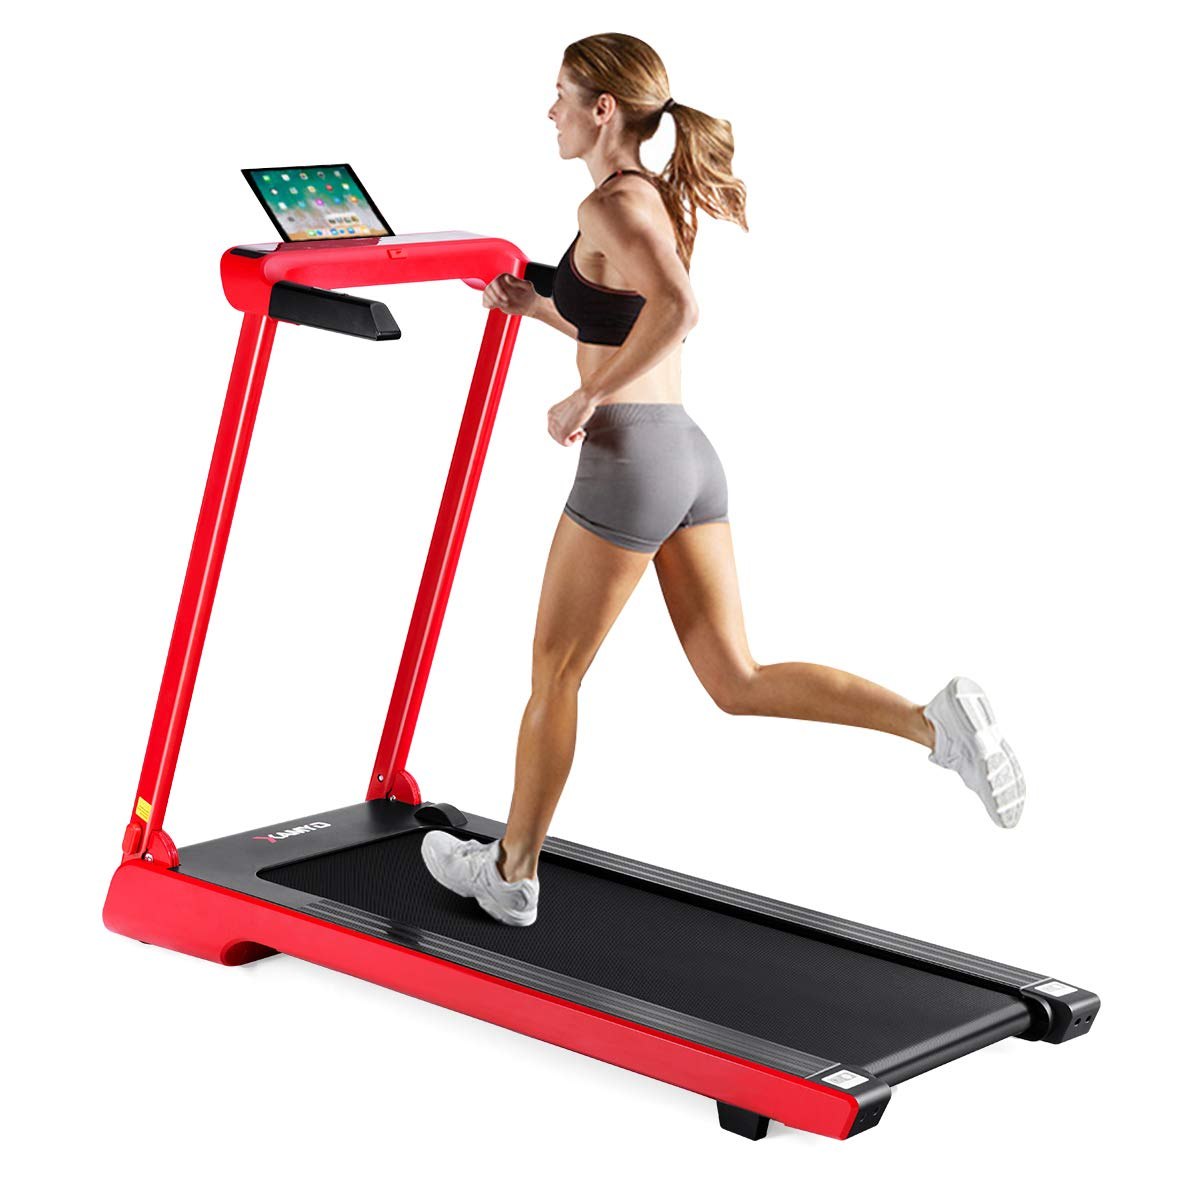 Goplus 2.25 HP Folding Treadmill Electric Cardio Fitness Jogging Running Machine Portable Motorized Power Slim Treadmill with Sports App and LED Display (Red) by Goplus (Image #2)